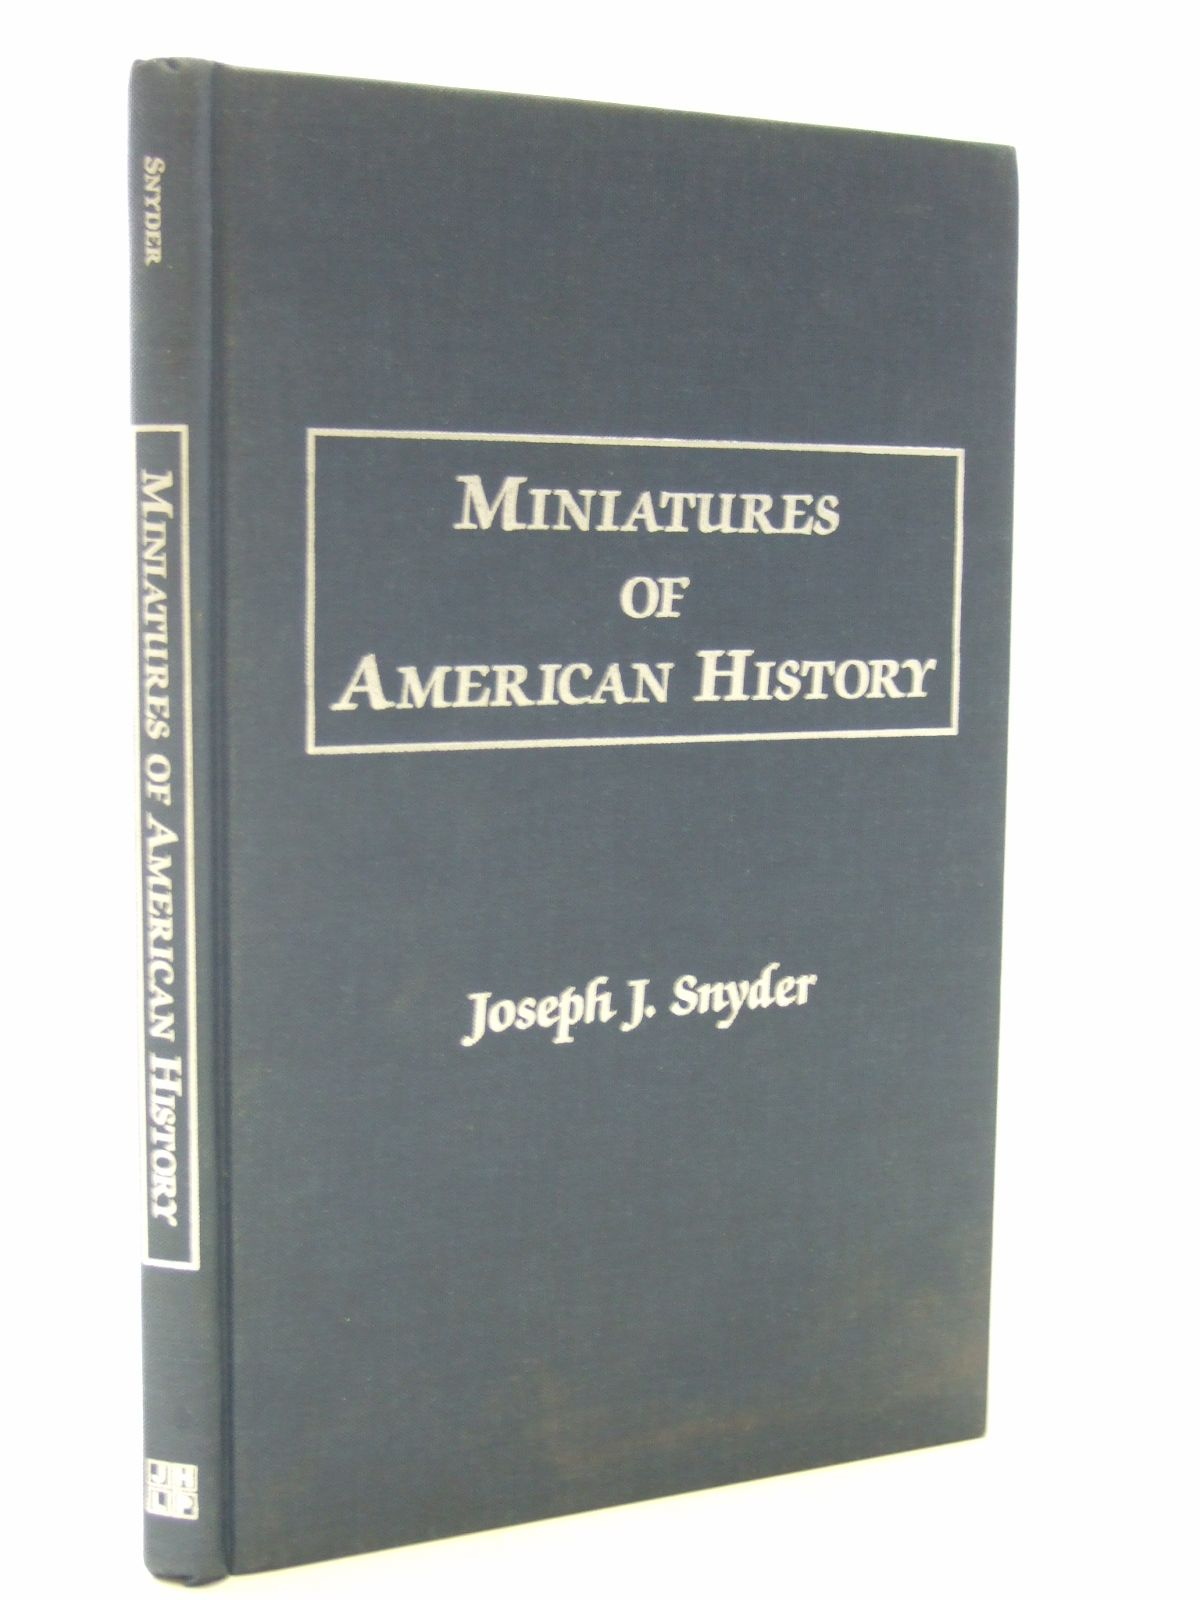 Photo of MINIATURES OF AMERICAN HISTORY written by Snyder, Joseph J. published by Juniper House Library (STOCK CODE: 1604015)  for sale by Stella & Rose's Books